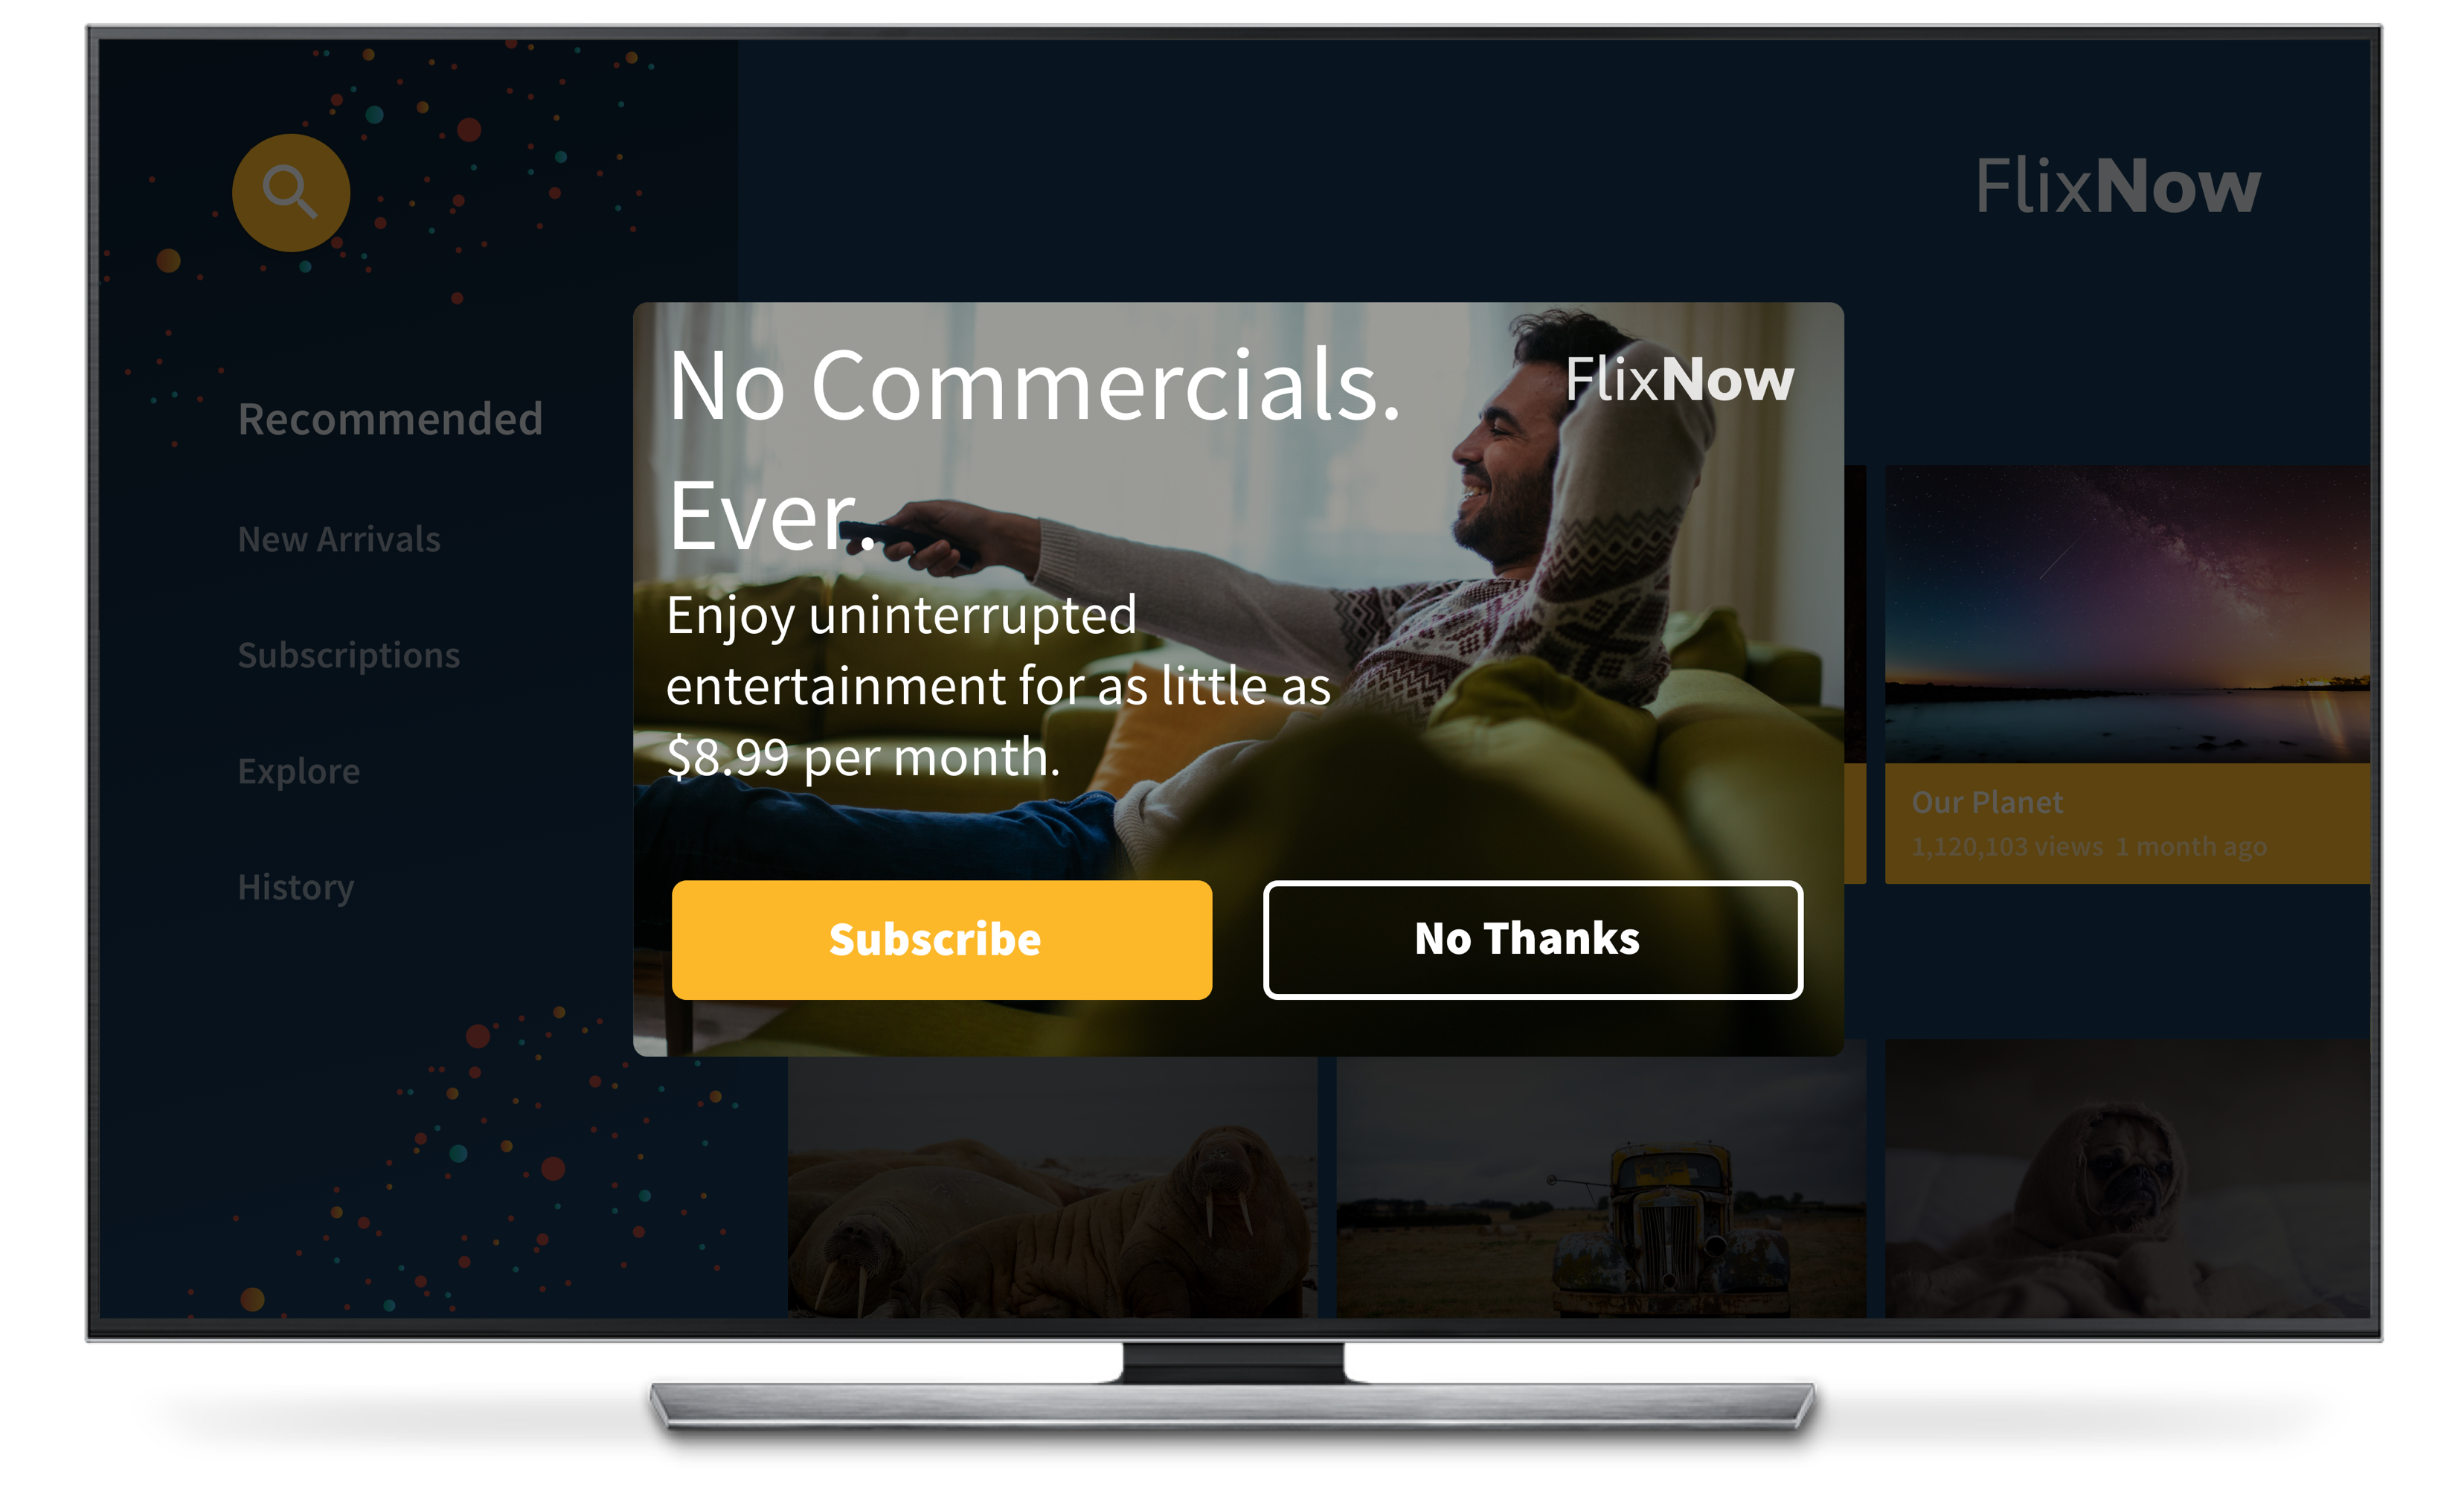 OTT media streaming in app message use case